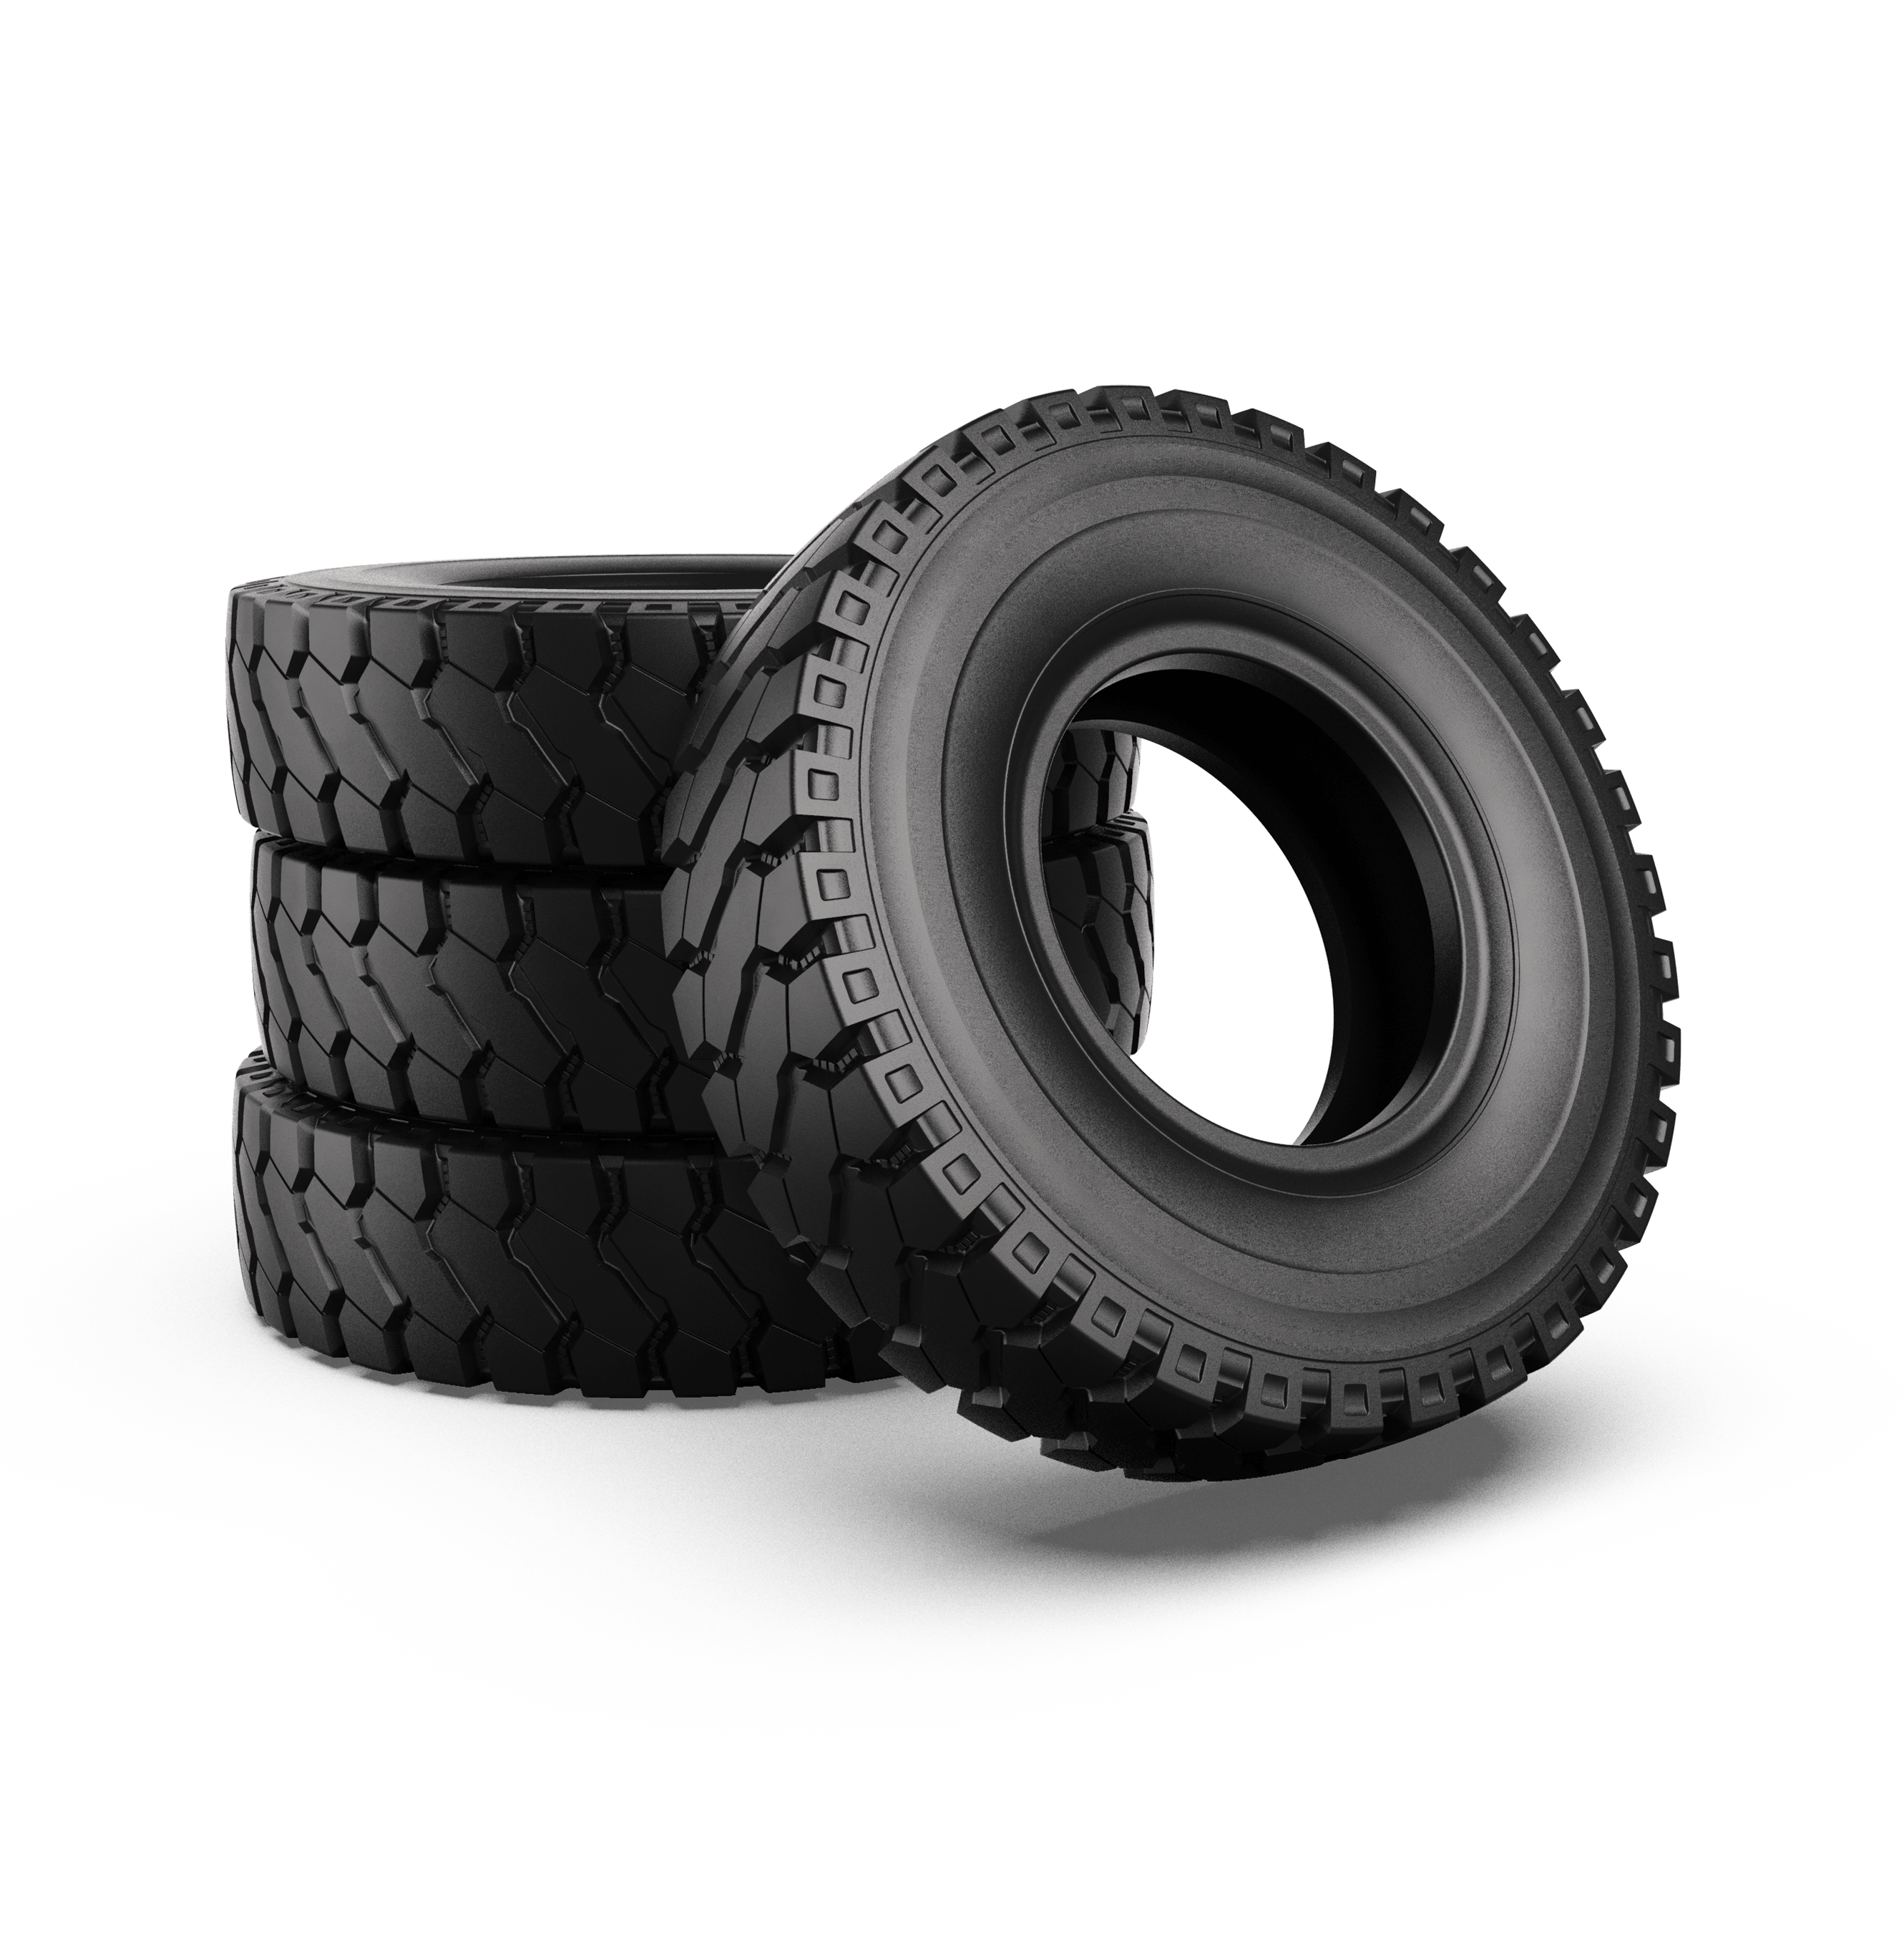 3D CAD Render by Sprout Studios of a Maxam Tire